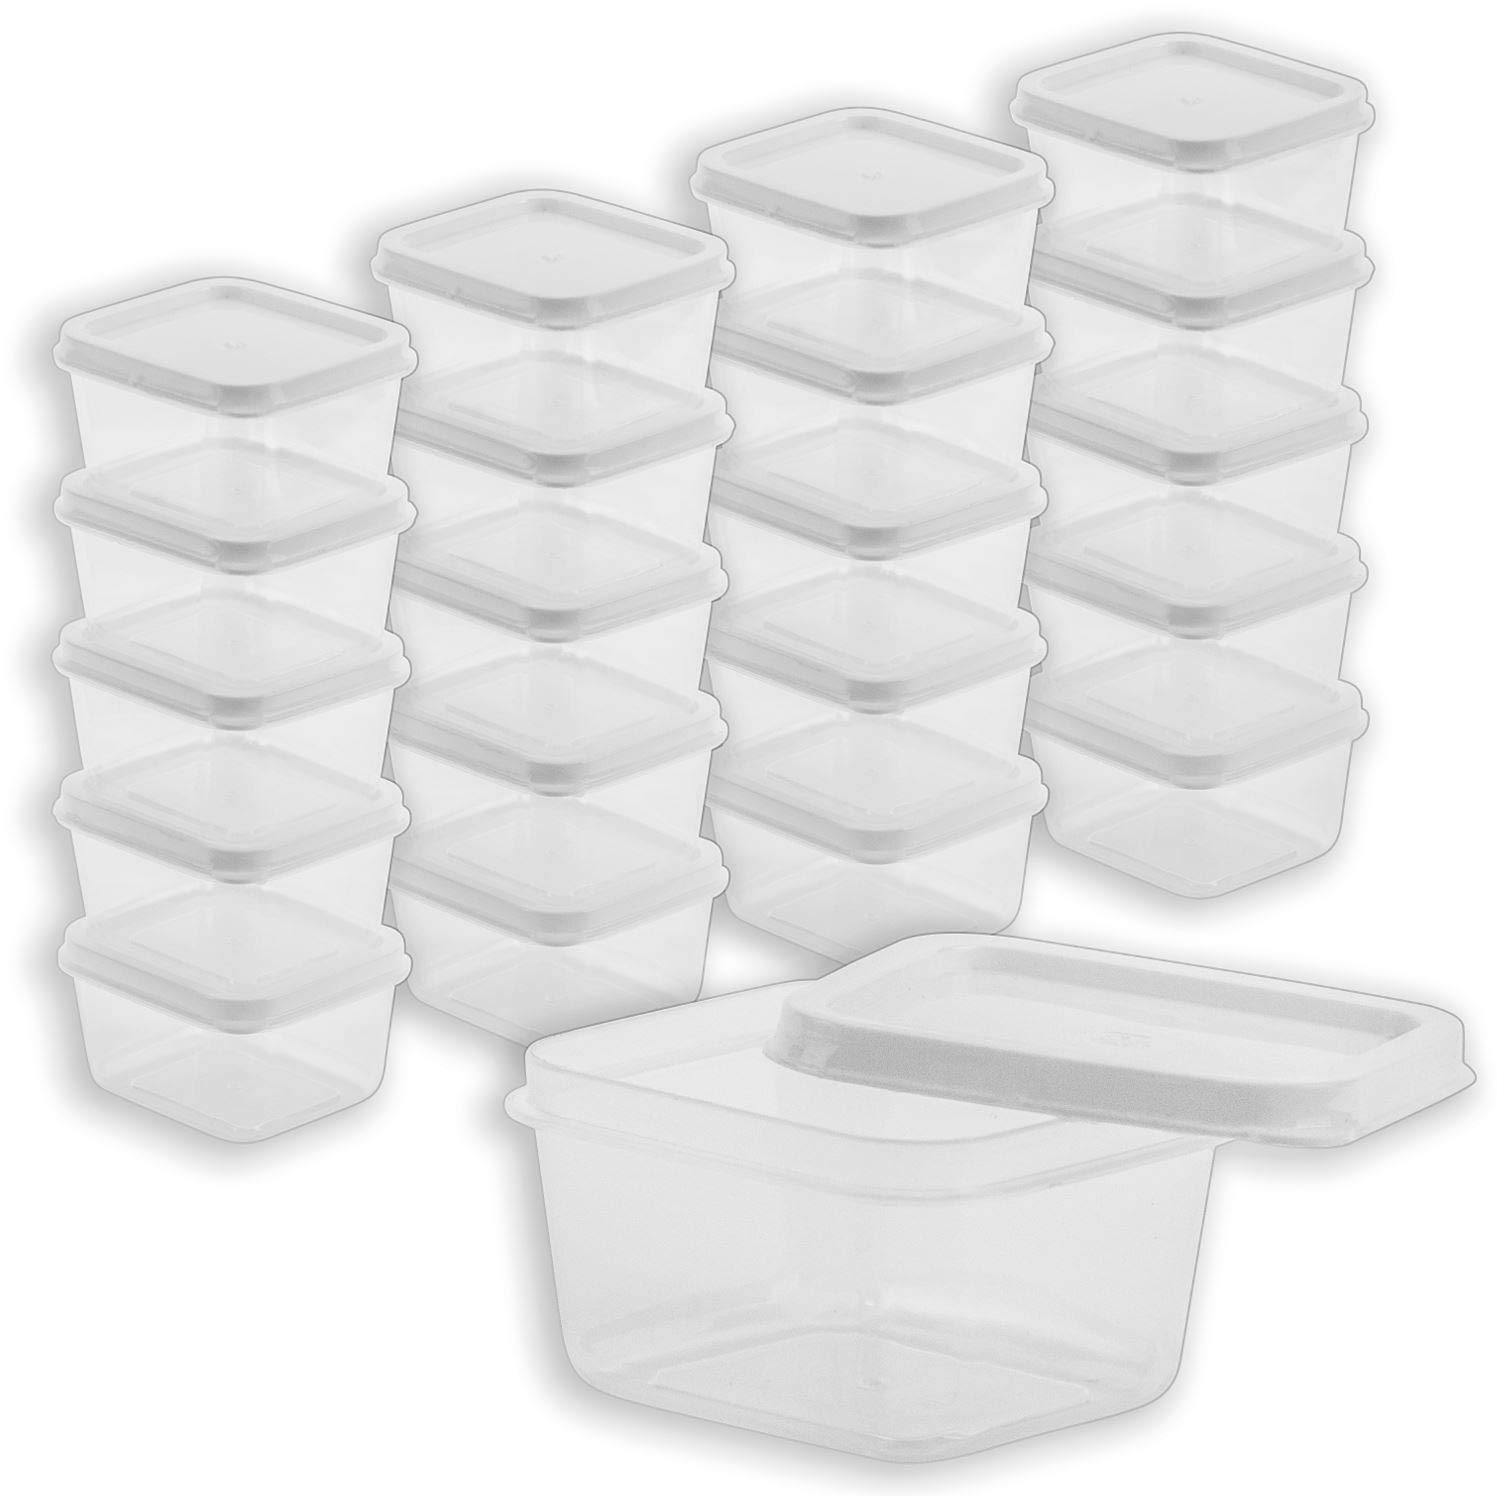 DecorRack 20 Plastic Rectangular Containers with Lids, 2oz, Craft Storage Mini Containers for Beads, Glitter, Slime, Paint or Seed Storage, Small Clear Empty Cups with Lids (20 Pack)